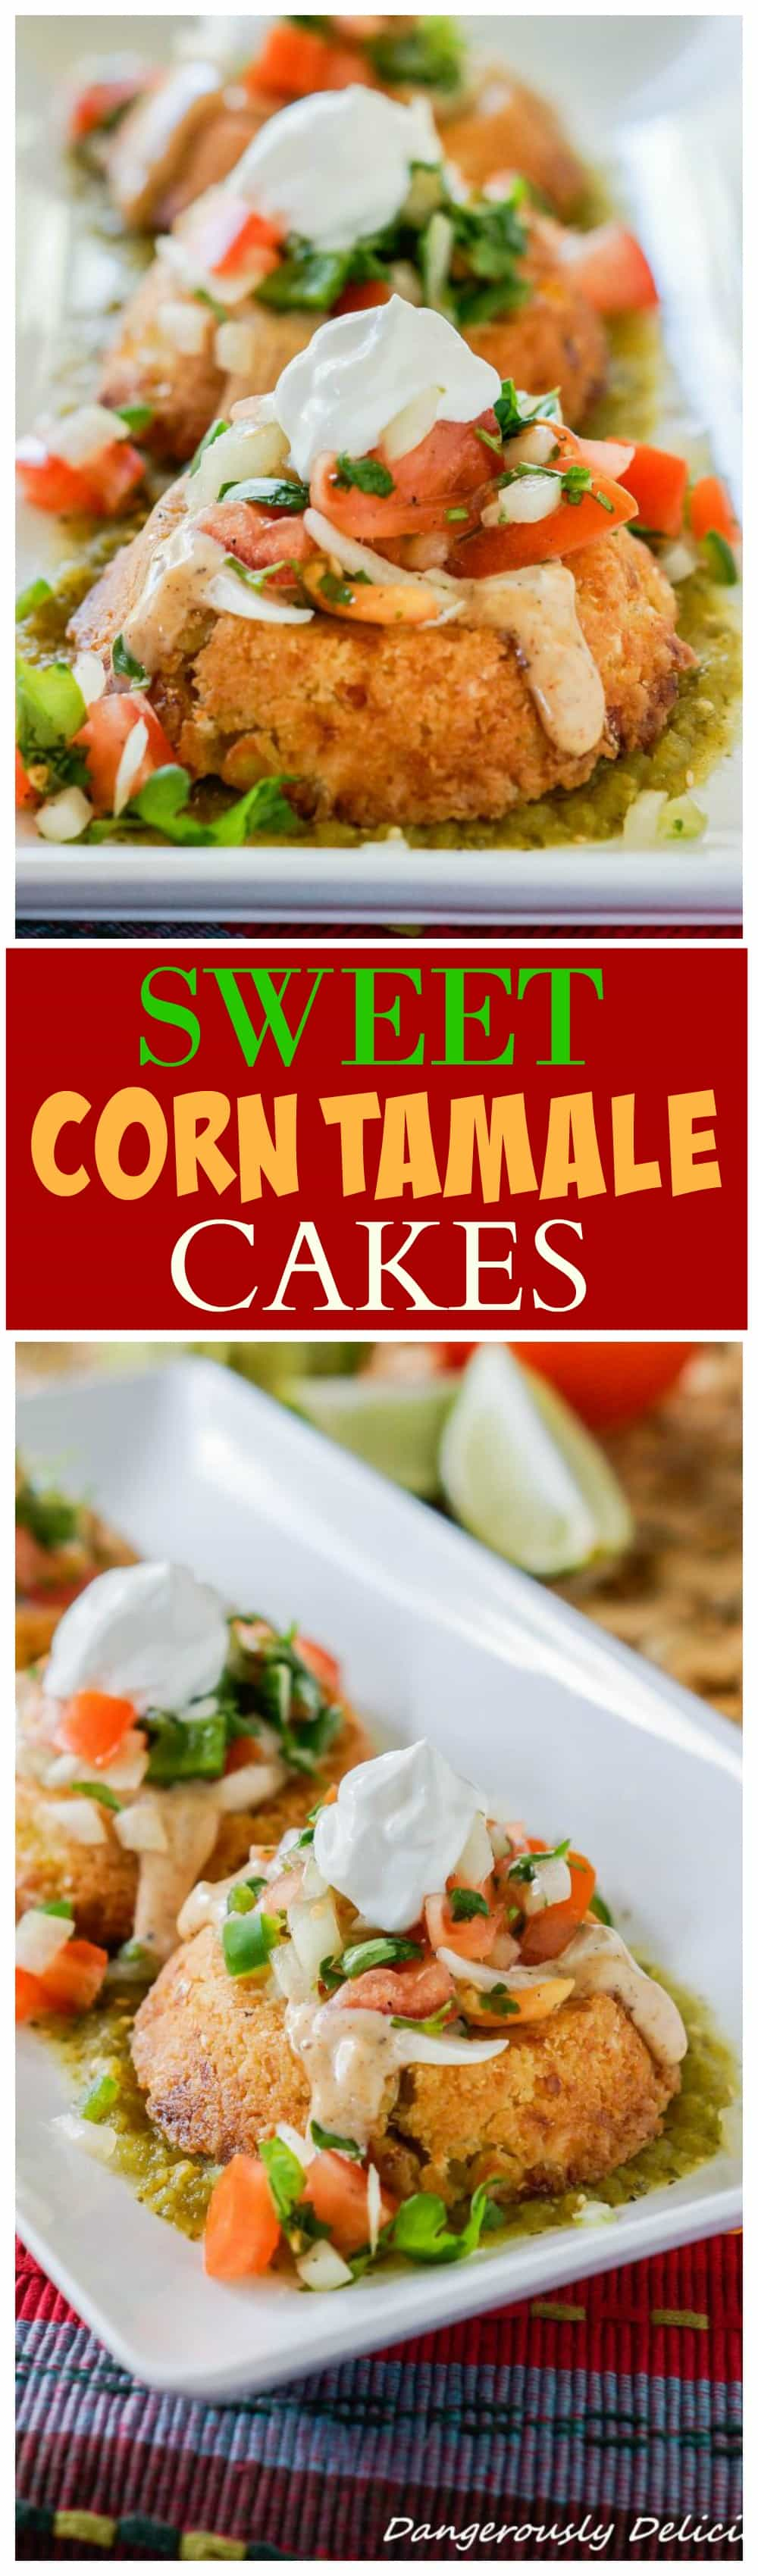 Thank you Crystal from Dangerously Delicious for sharing these Sweet Corn Tamale Cakes!